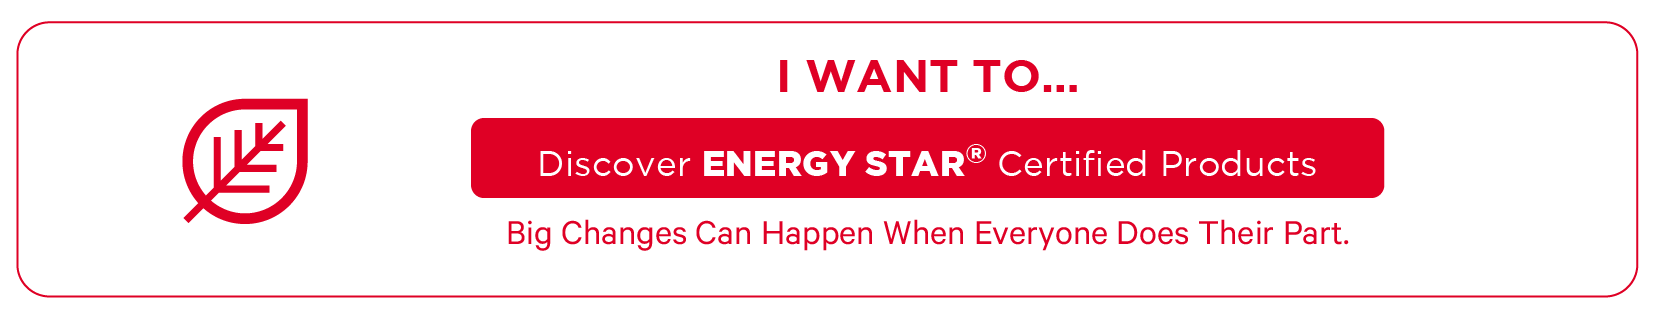 cta-outline_energy-star